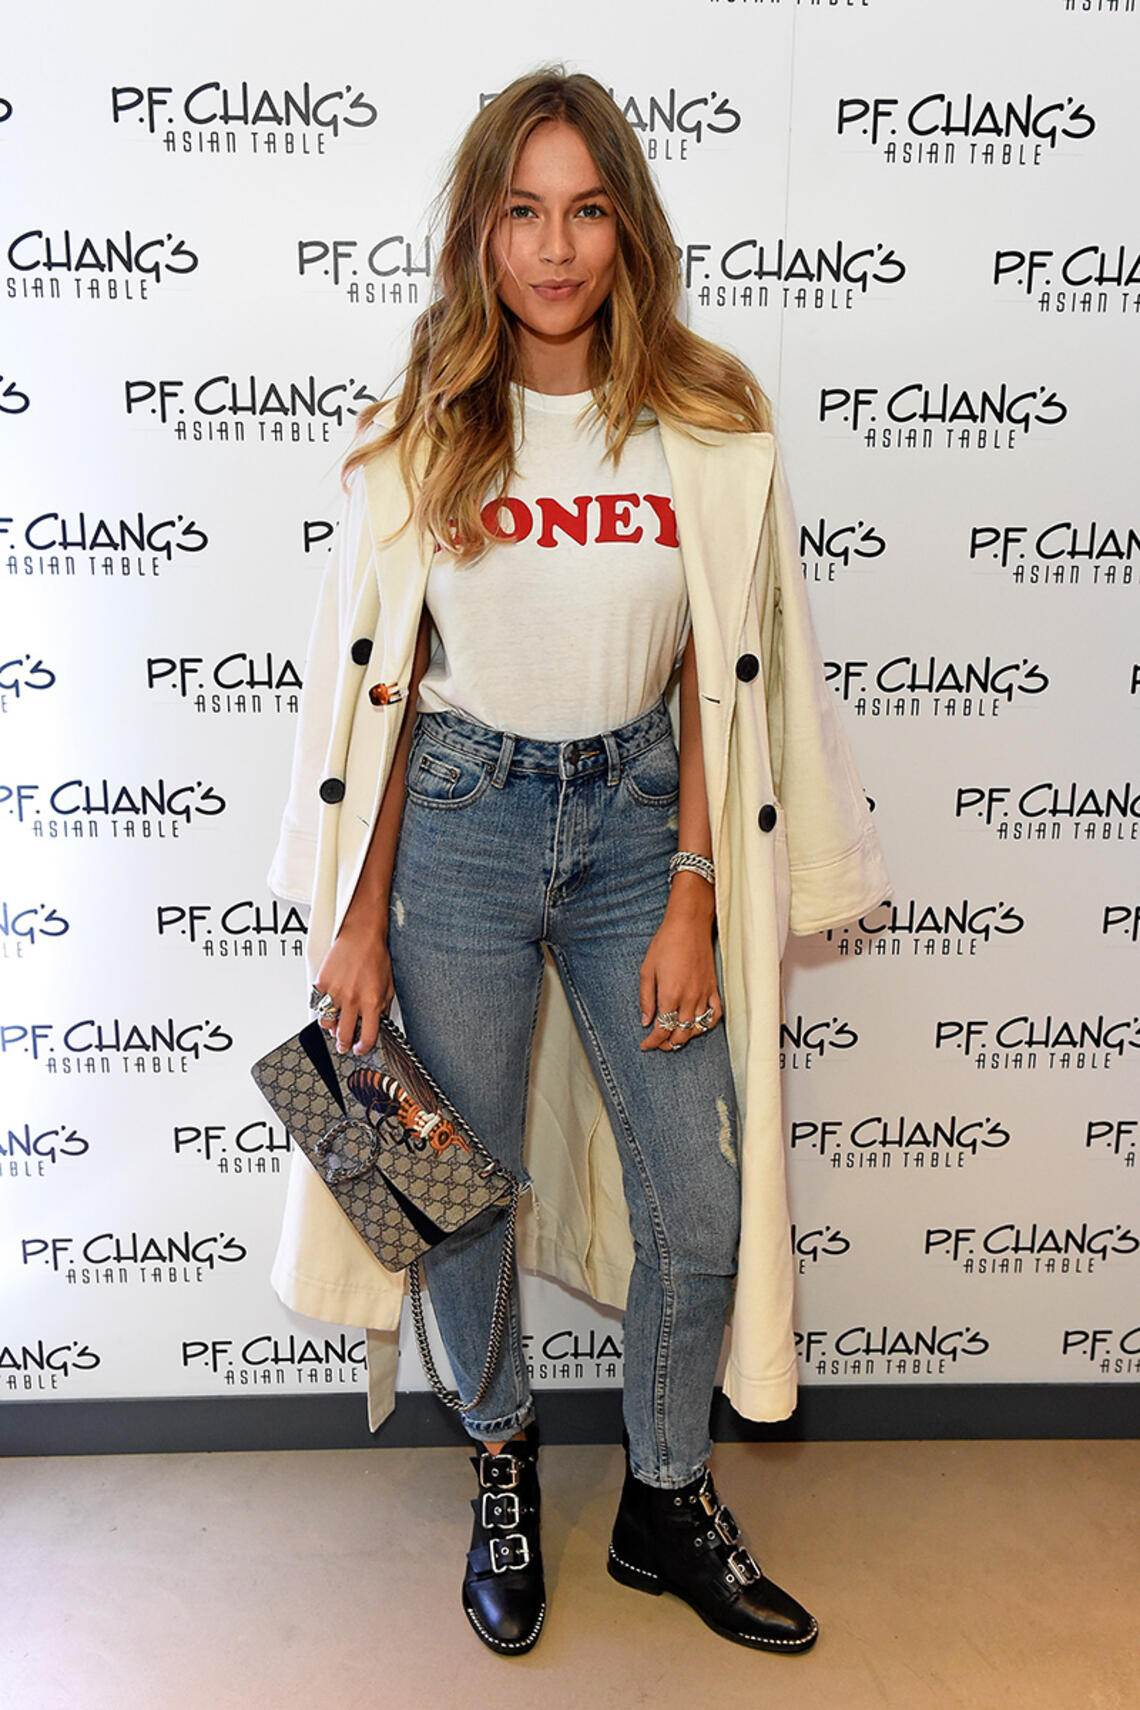 Look of the Day – Emma Louise Connolly, Model